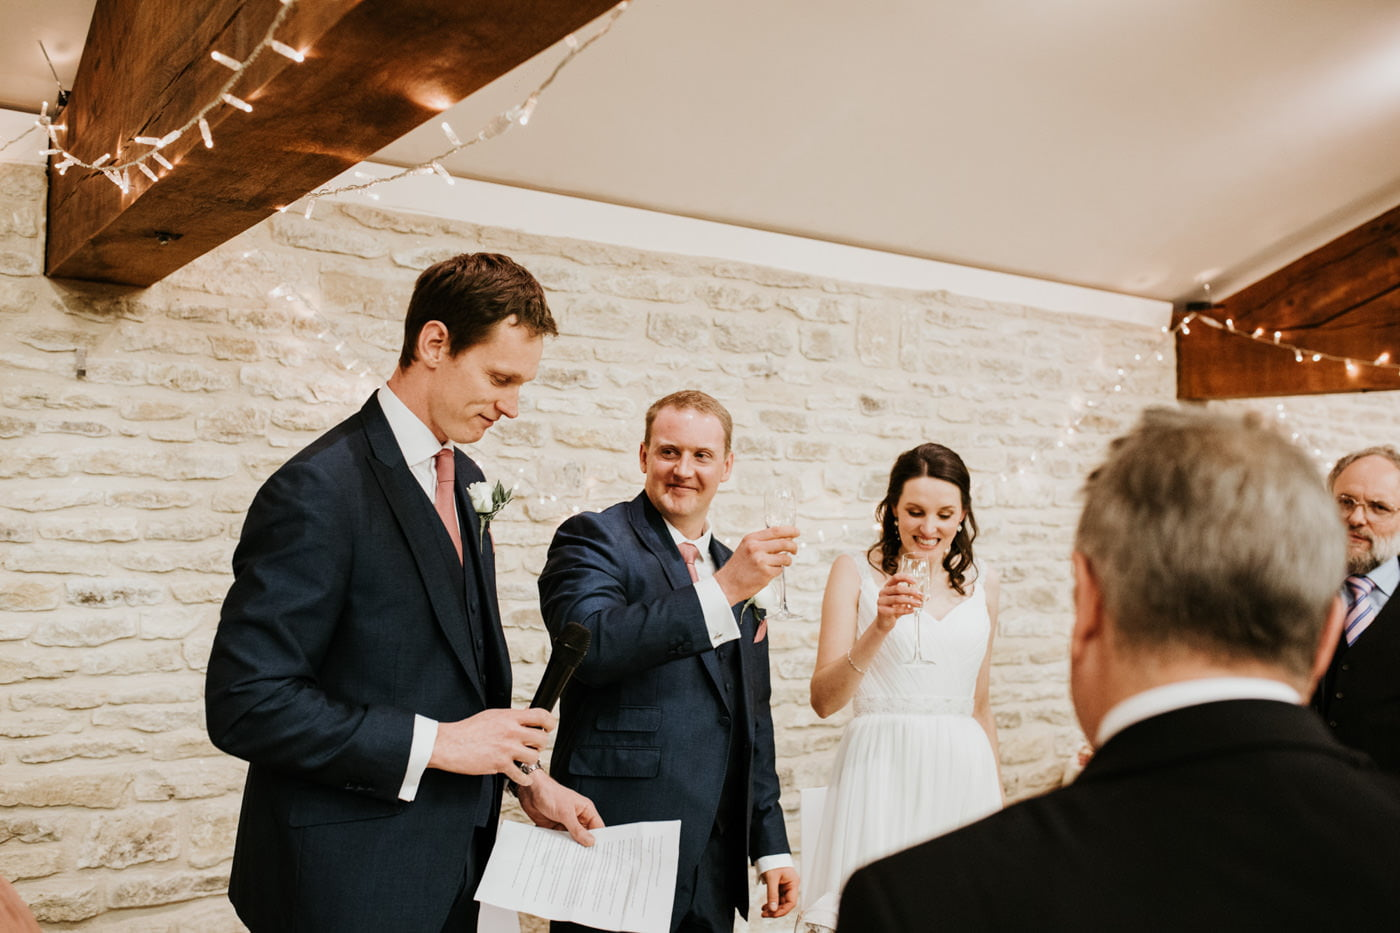 Ruth and Ben, Winkworth Farm, Wiltshire 3